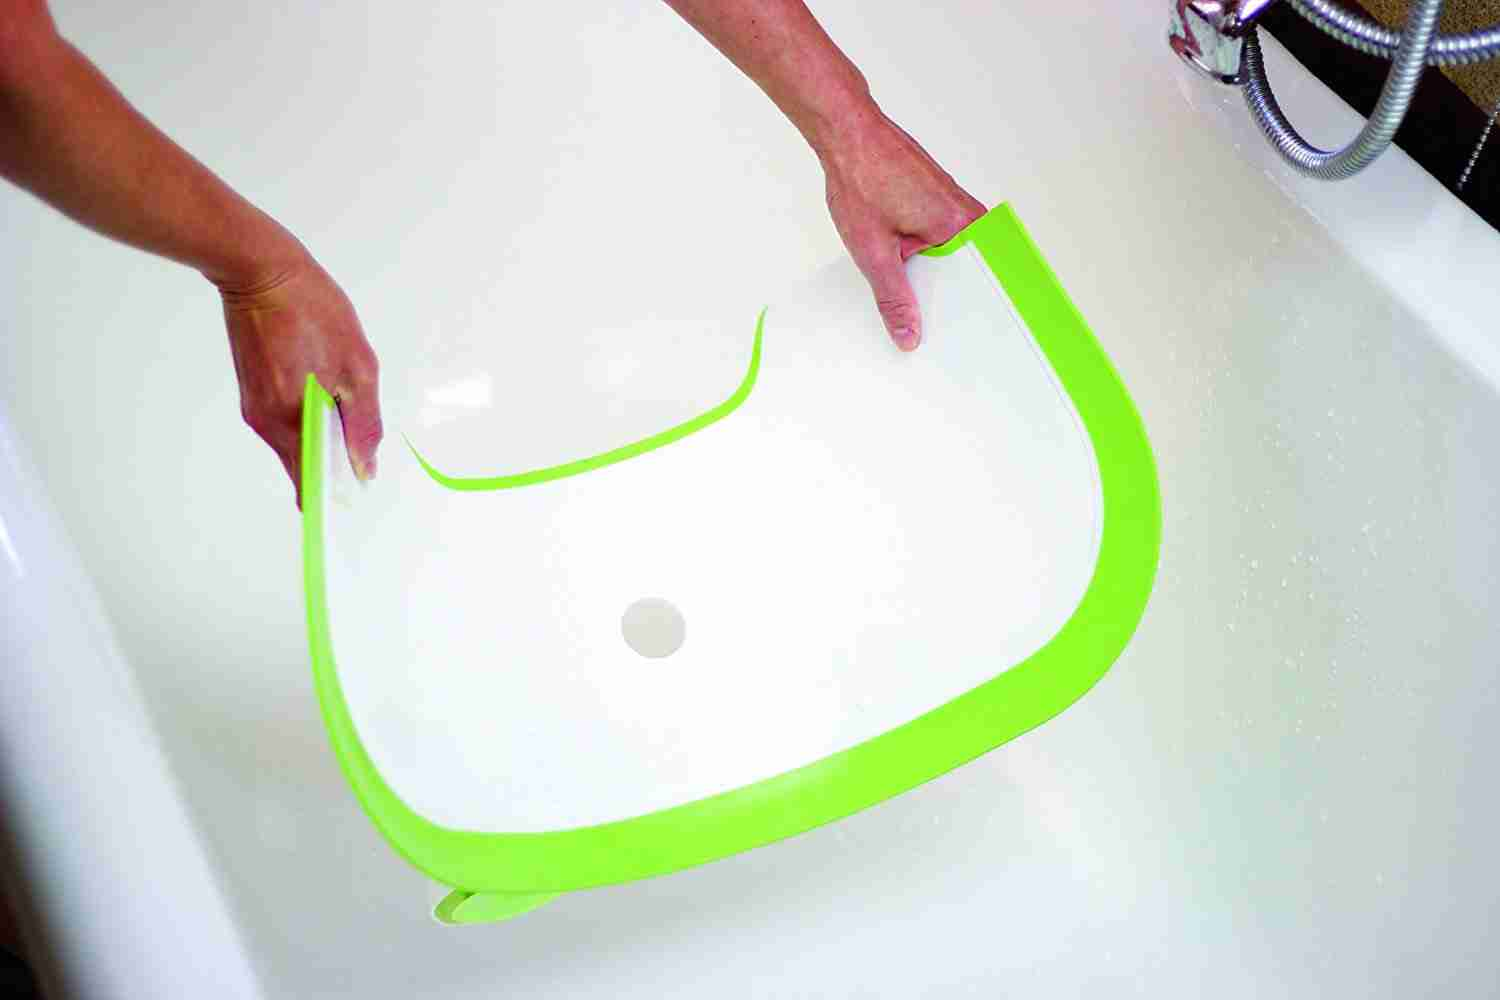 The bathwater barrier slots into your family tub to create a seat that stops water from seeping out.